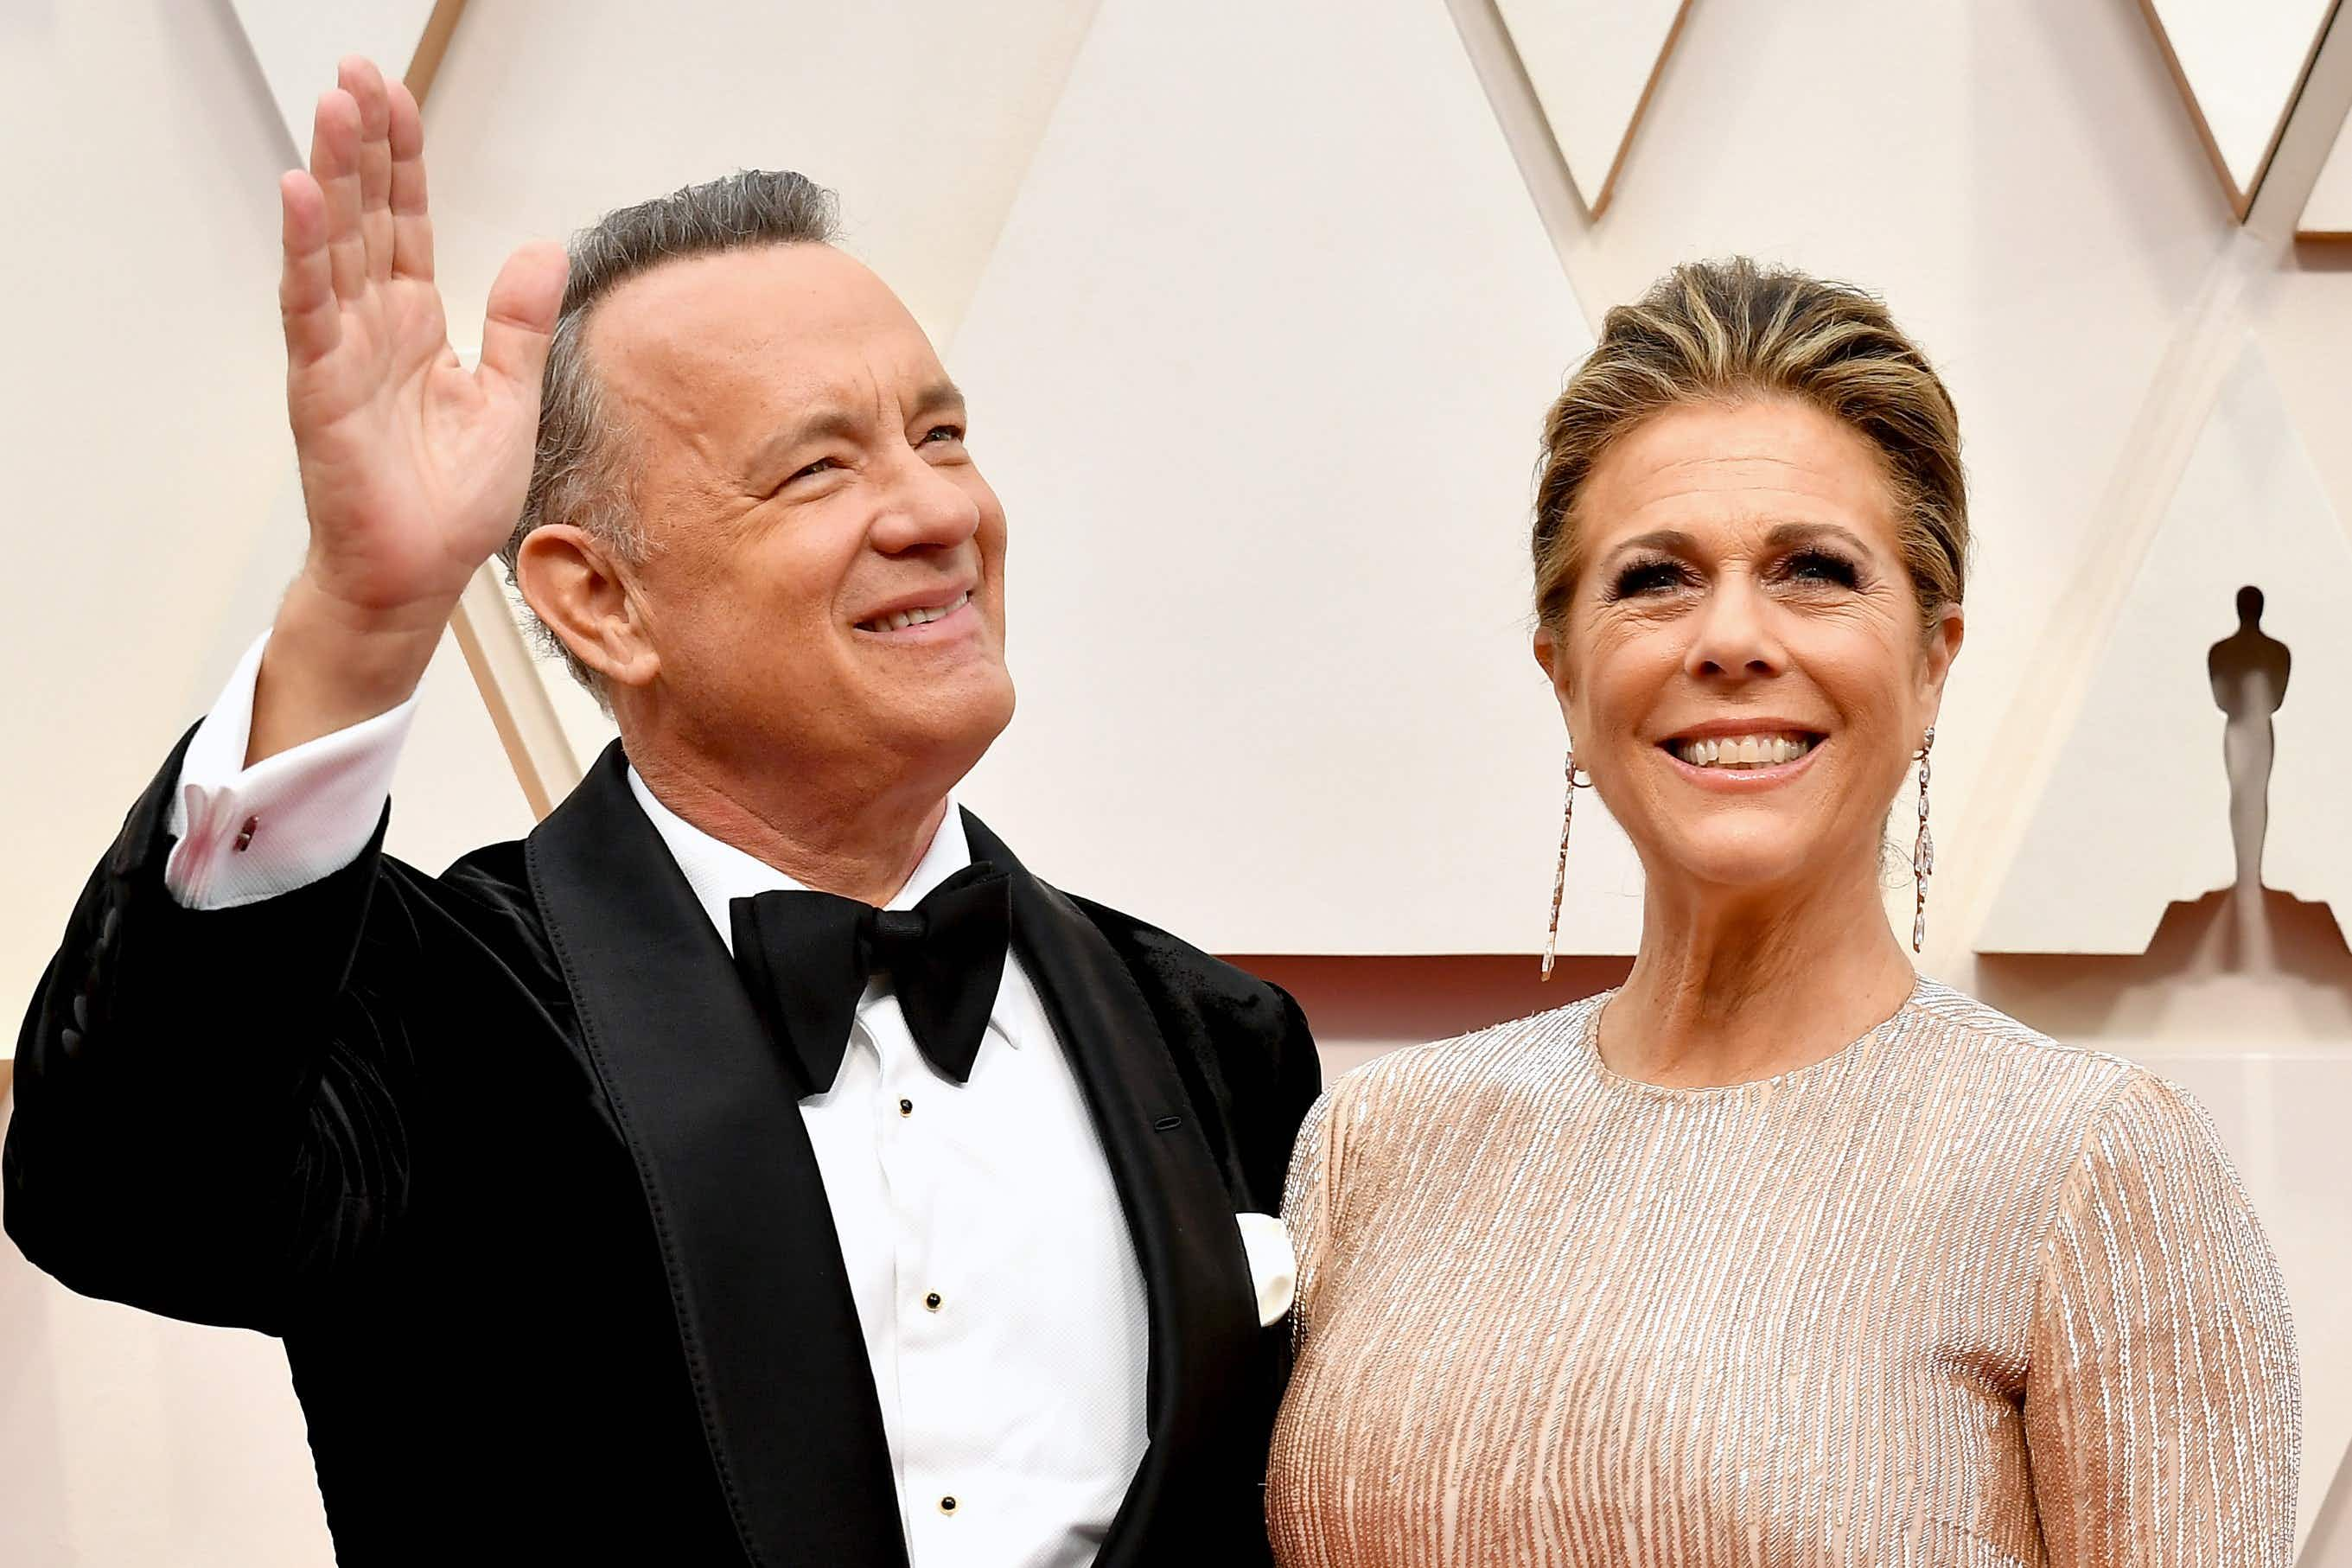 Tom Hanks and Rita Wilson at the 92nd Annual Academy Awards in February 2020 © Amy Sussman/Getty Images